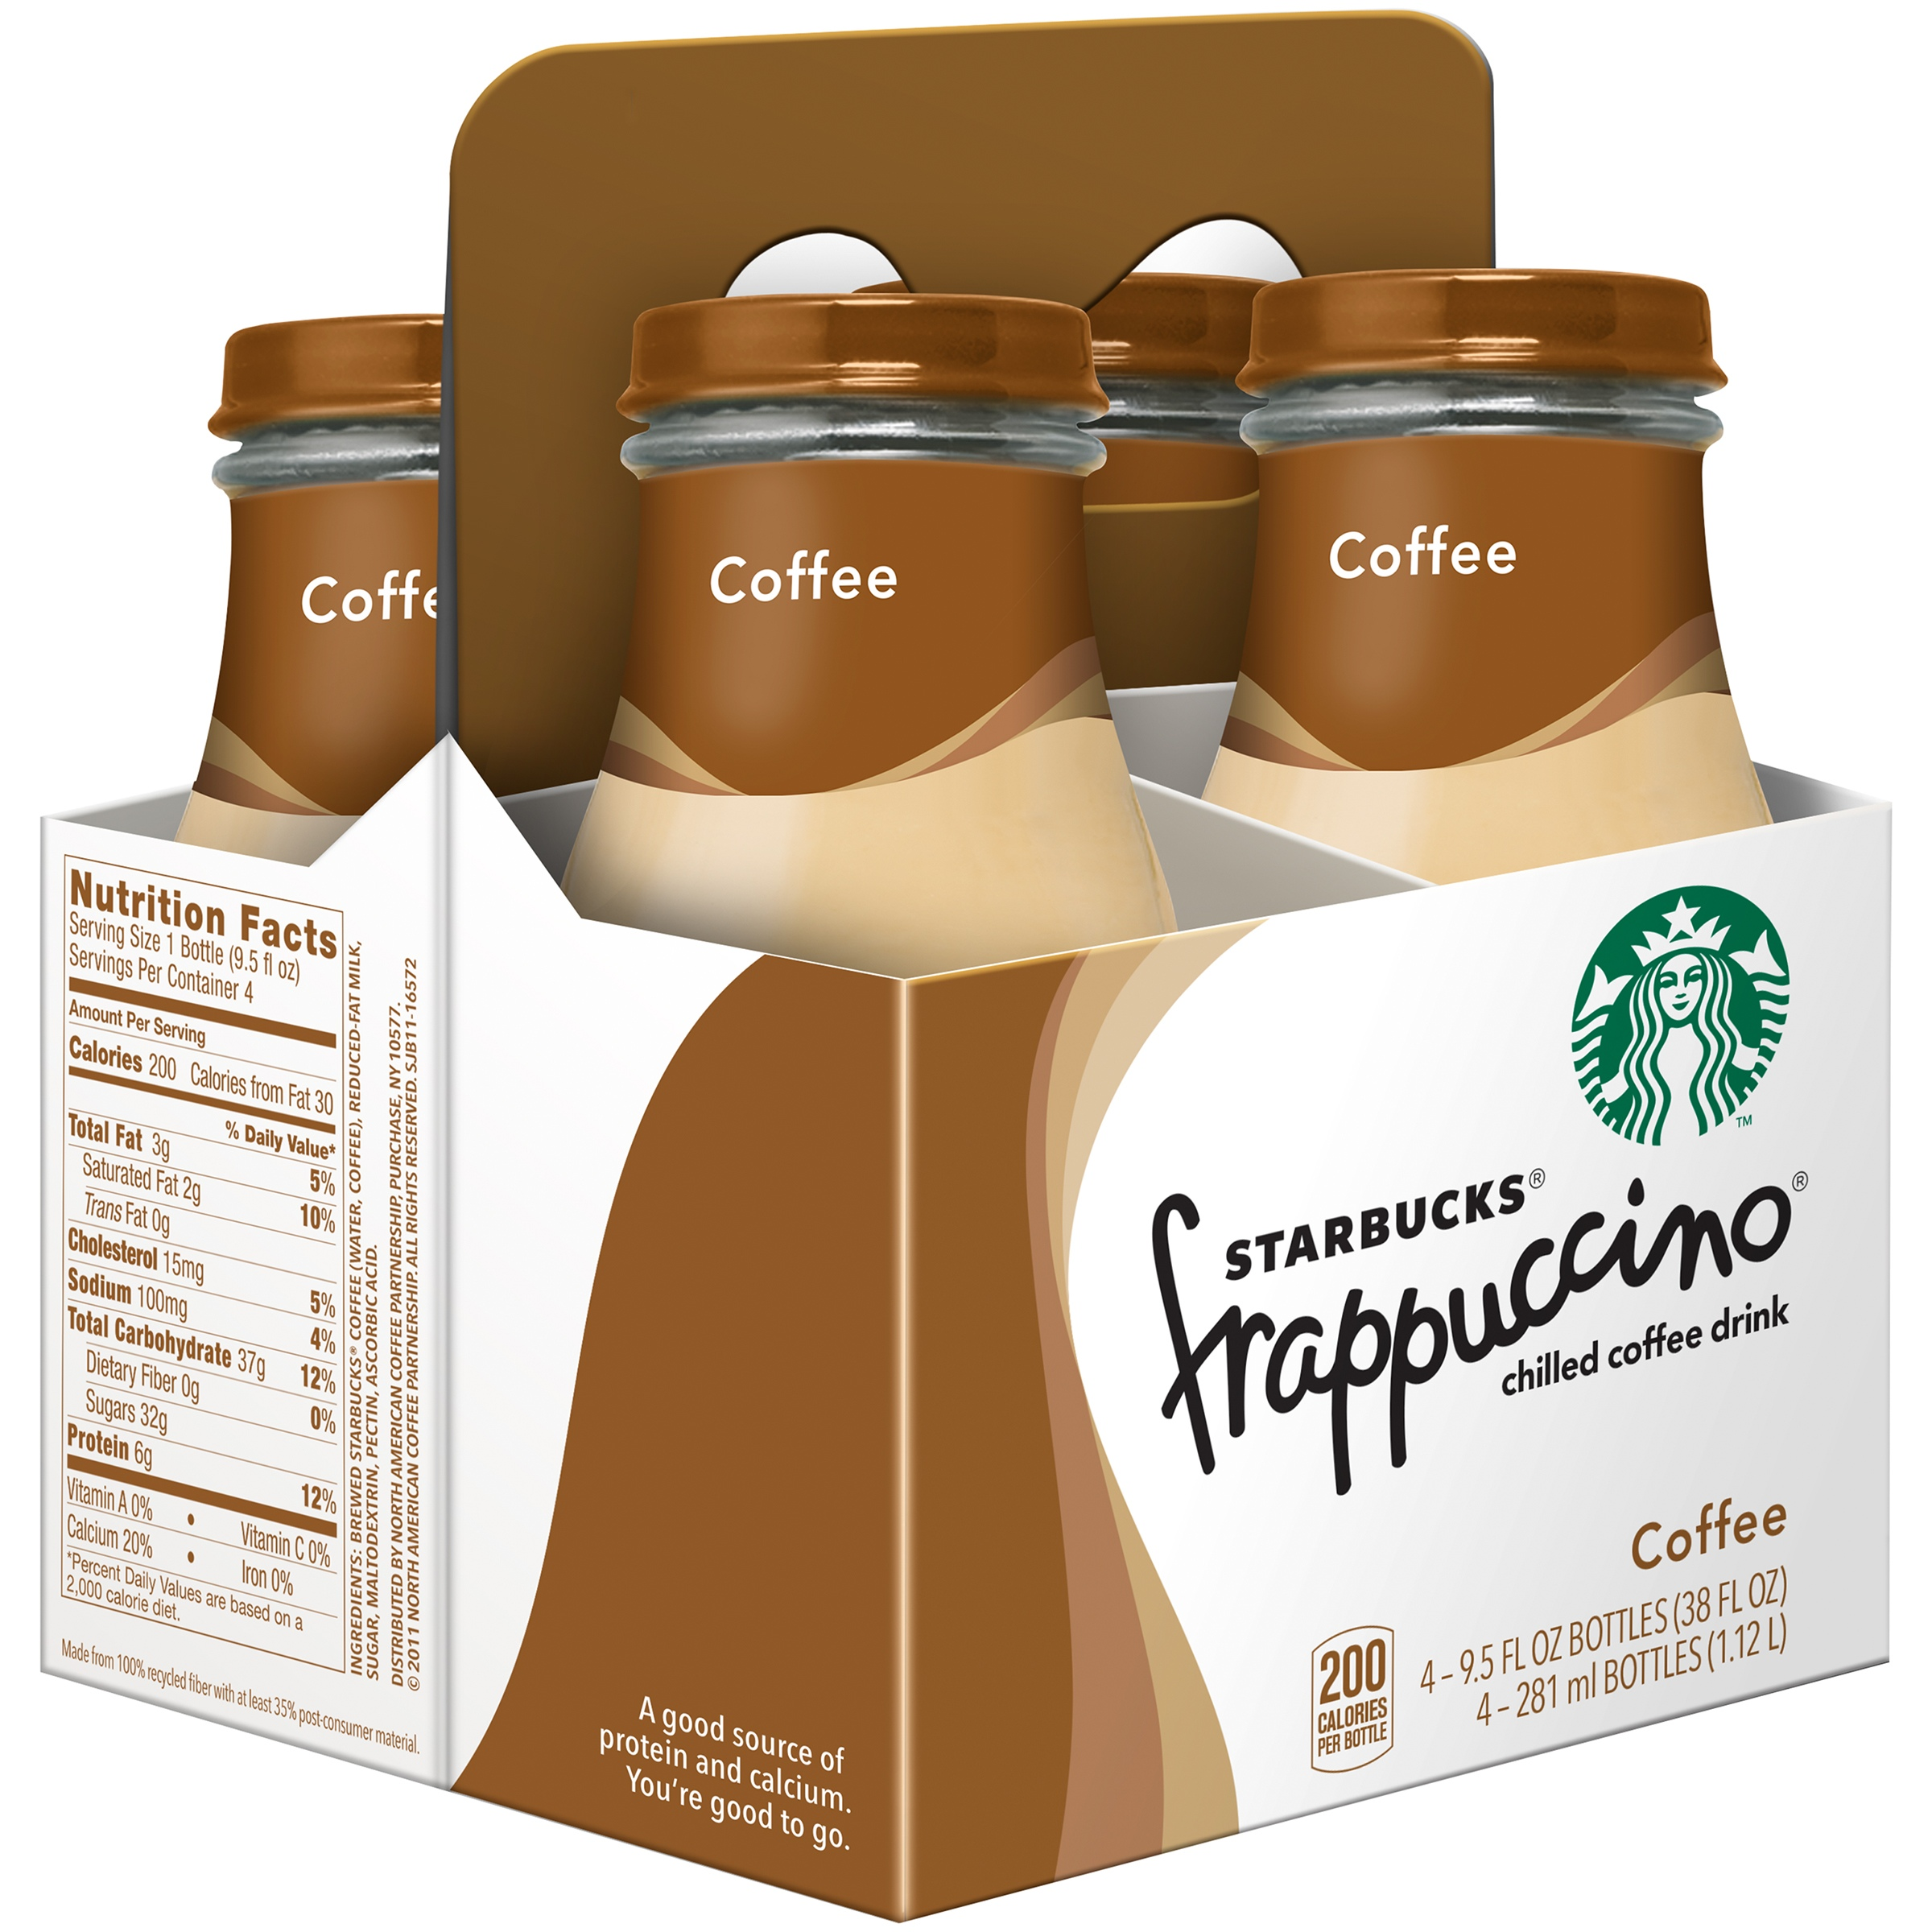 Starbucks; Frappuccino; Chilled Coffee Drink, Coffee, 4 Count, 9.5 fl. oz. Glass Bottles